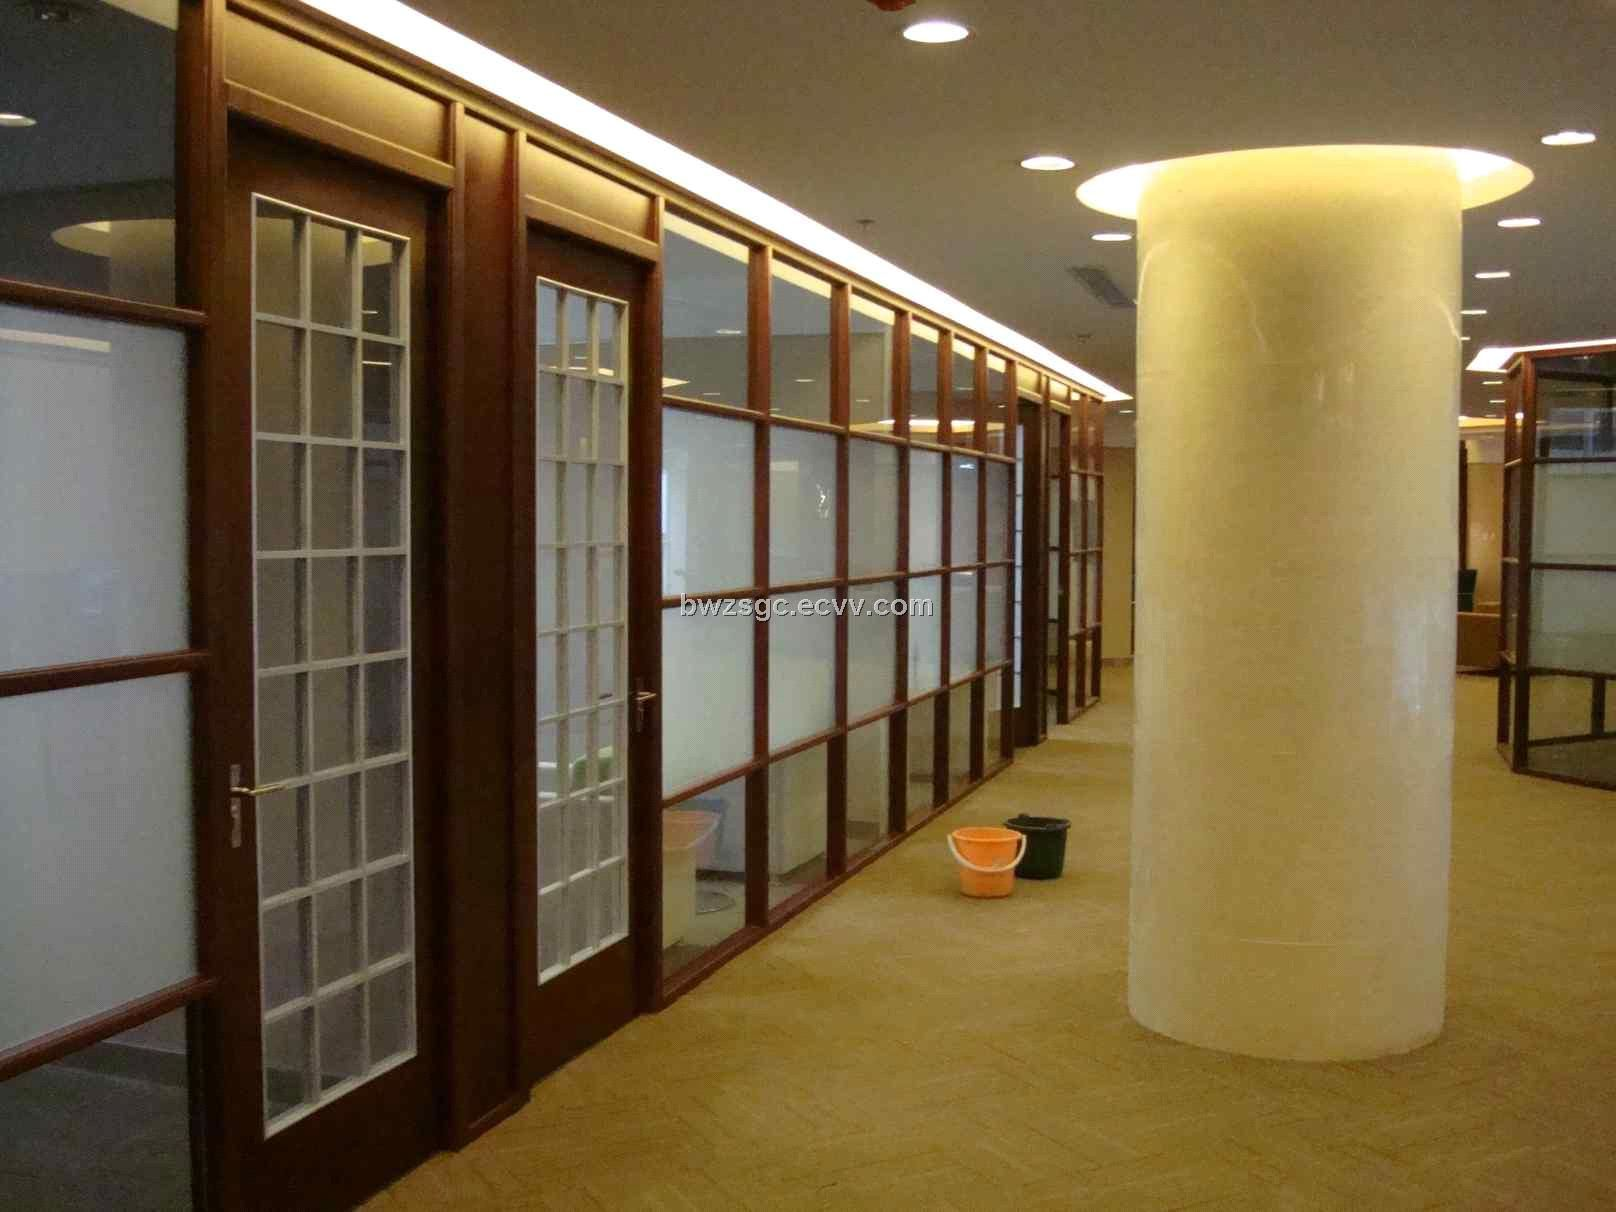 Office design with wood trim glass wall medium 80 x 80 pixel large 920 x 689 pixel hd Interior glass partition systems